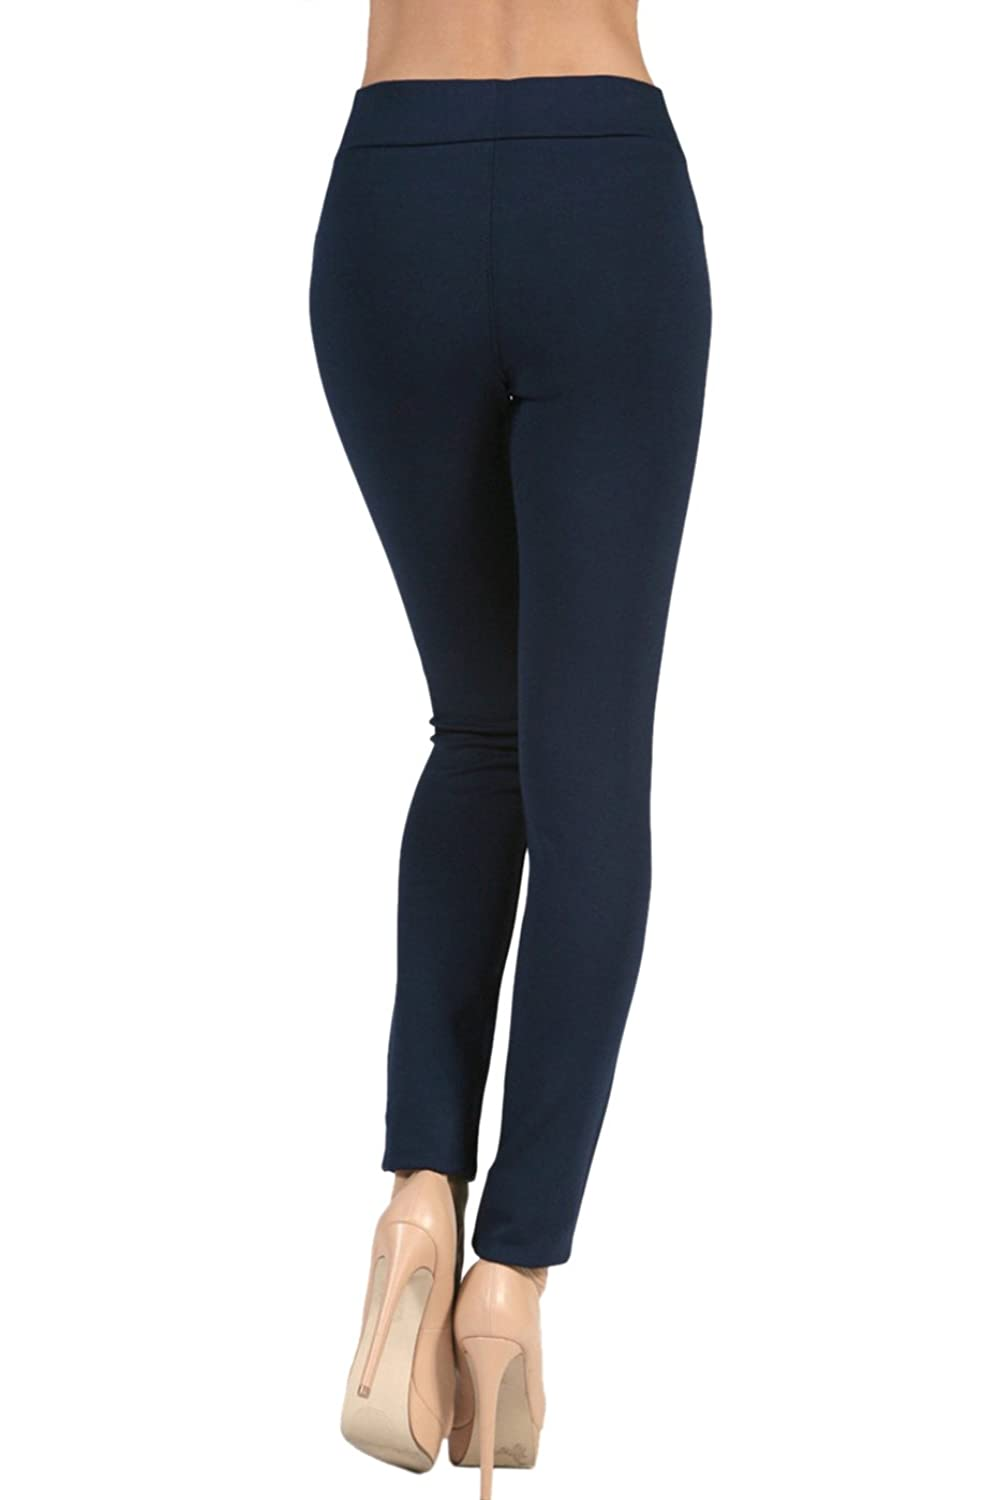 2LUV Women's Stretch Ponte Pants with Tipped Waistband